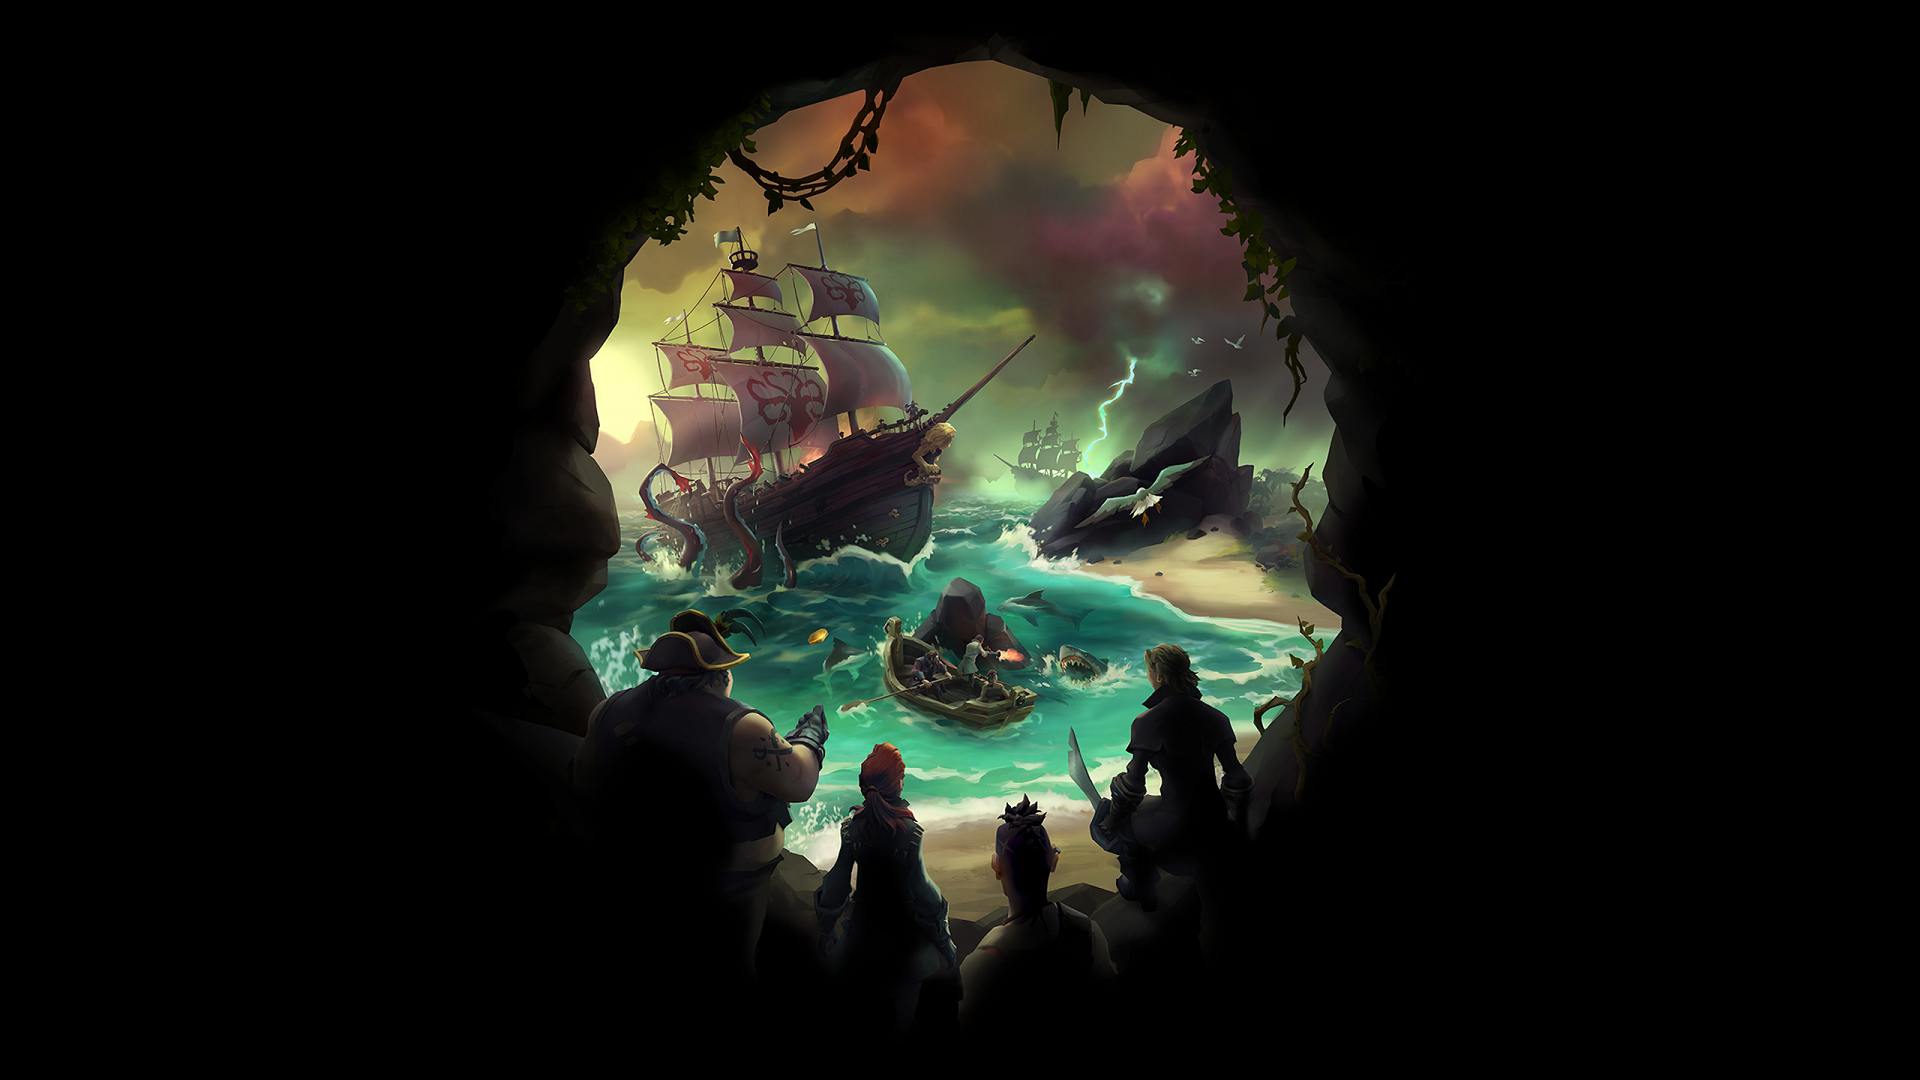 SeaofThieves featured